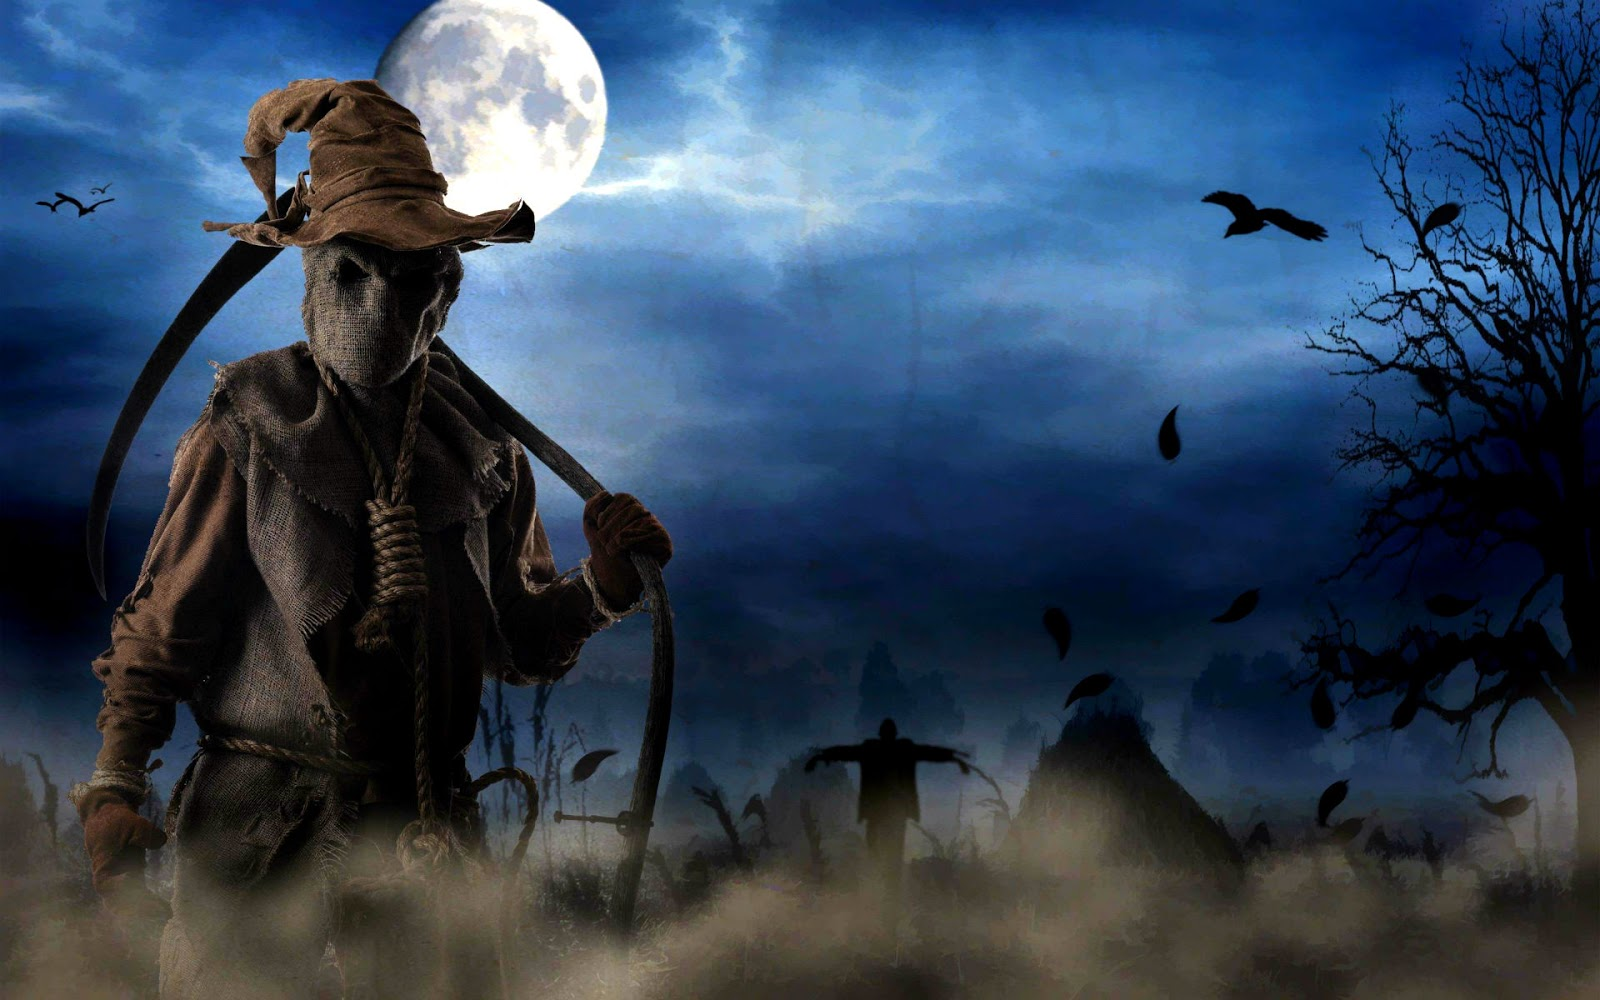 Scary Animated Halloween Wallpaper - WallpaperSafari